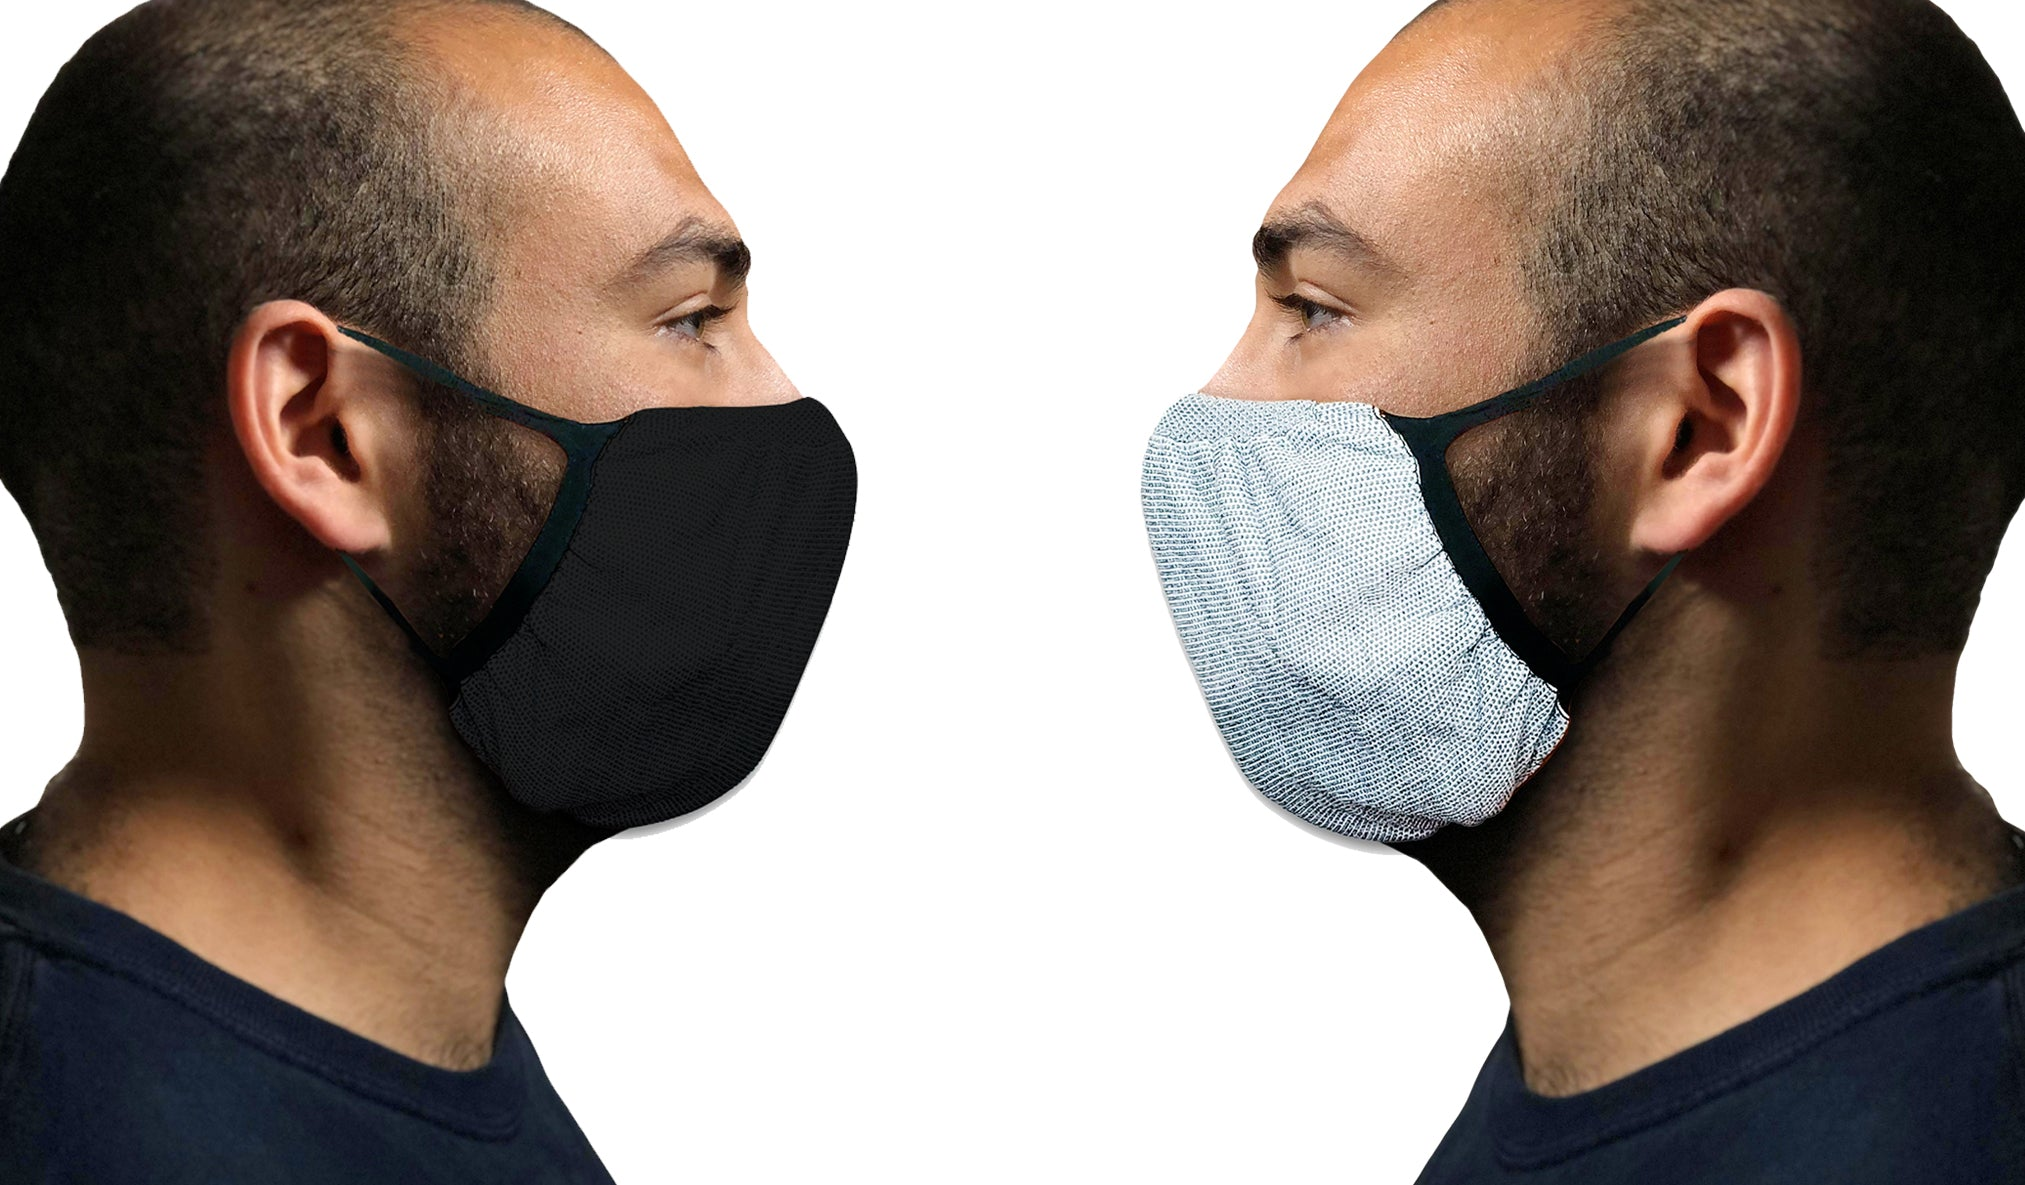 Masque Halt Comfort Protect Large - HALTMASK